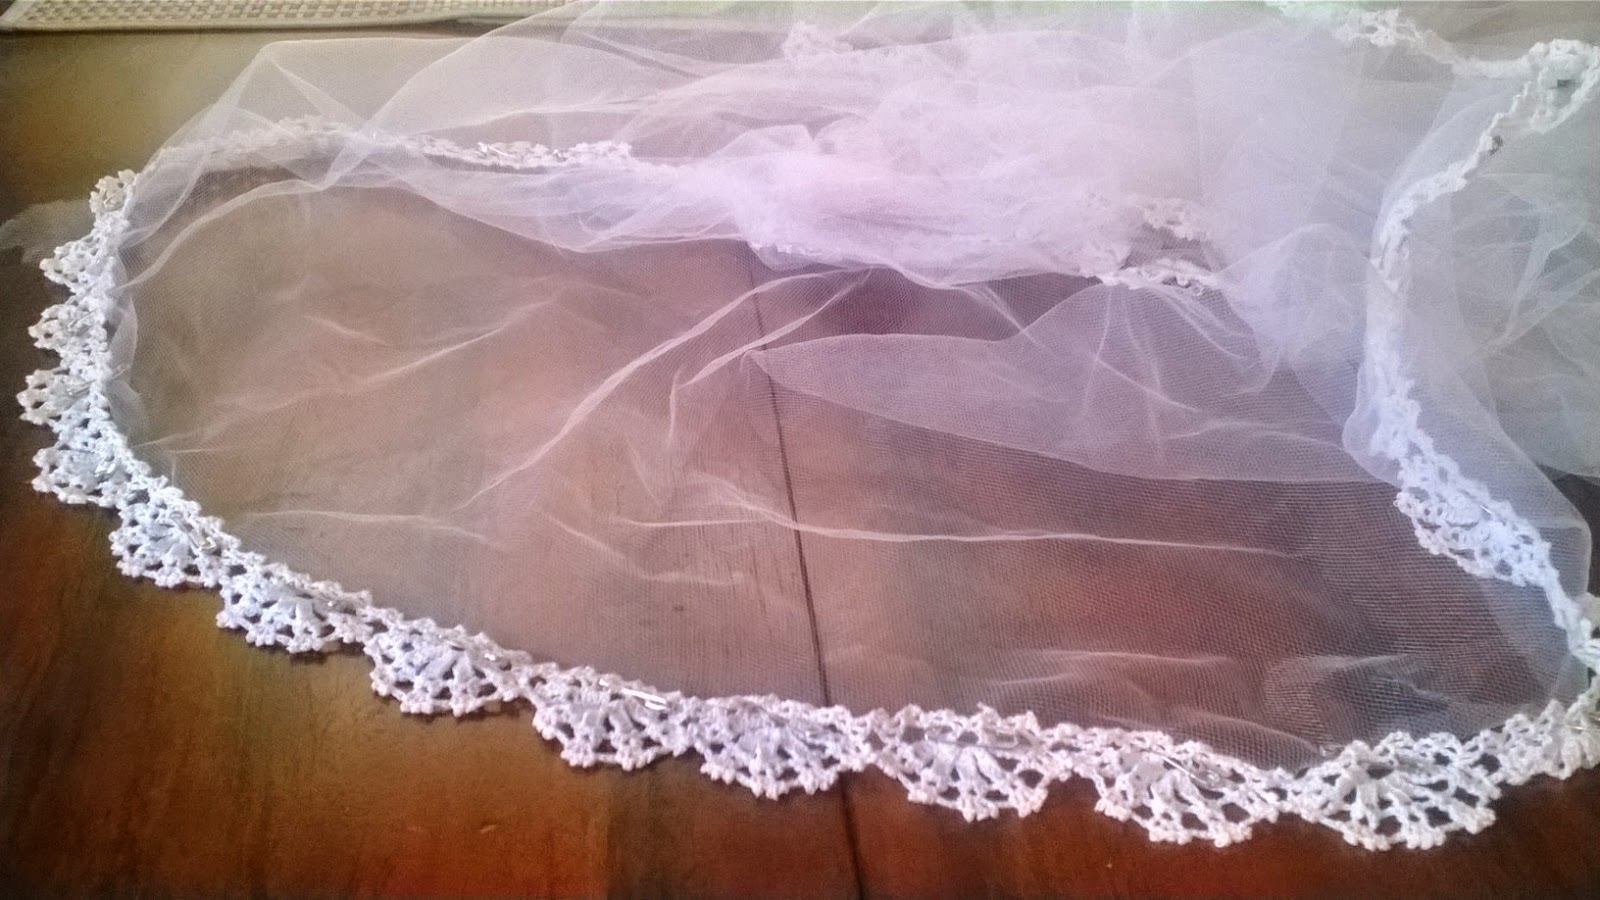 Craft Disasters and other Atrocities: The Crochet Lace Veil Project